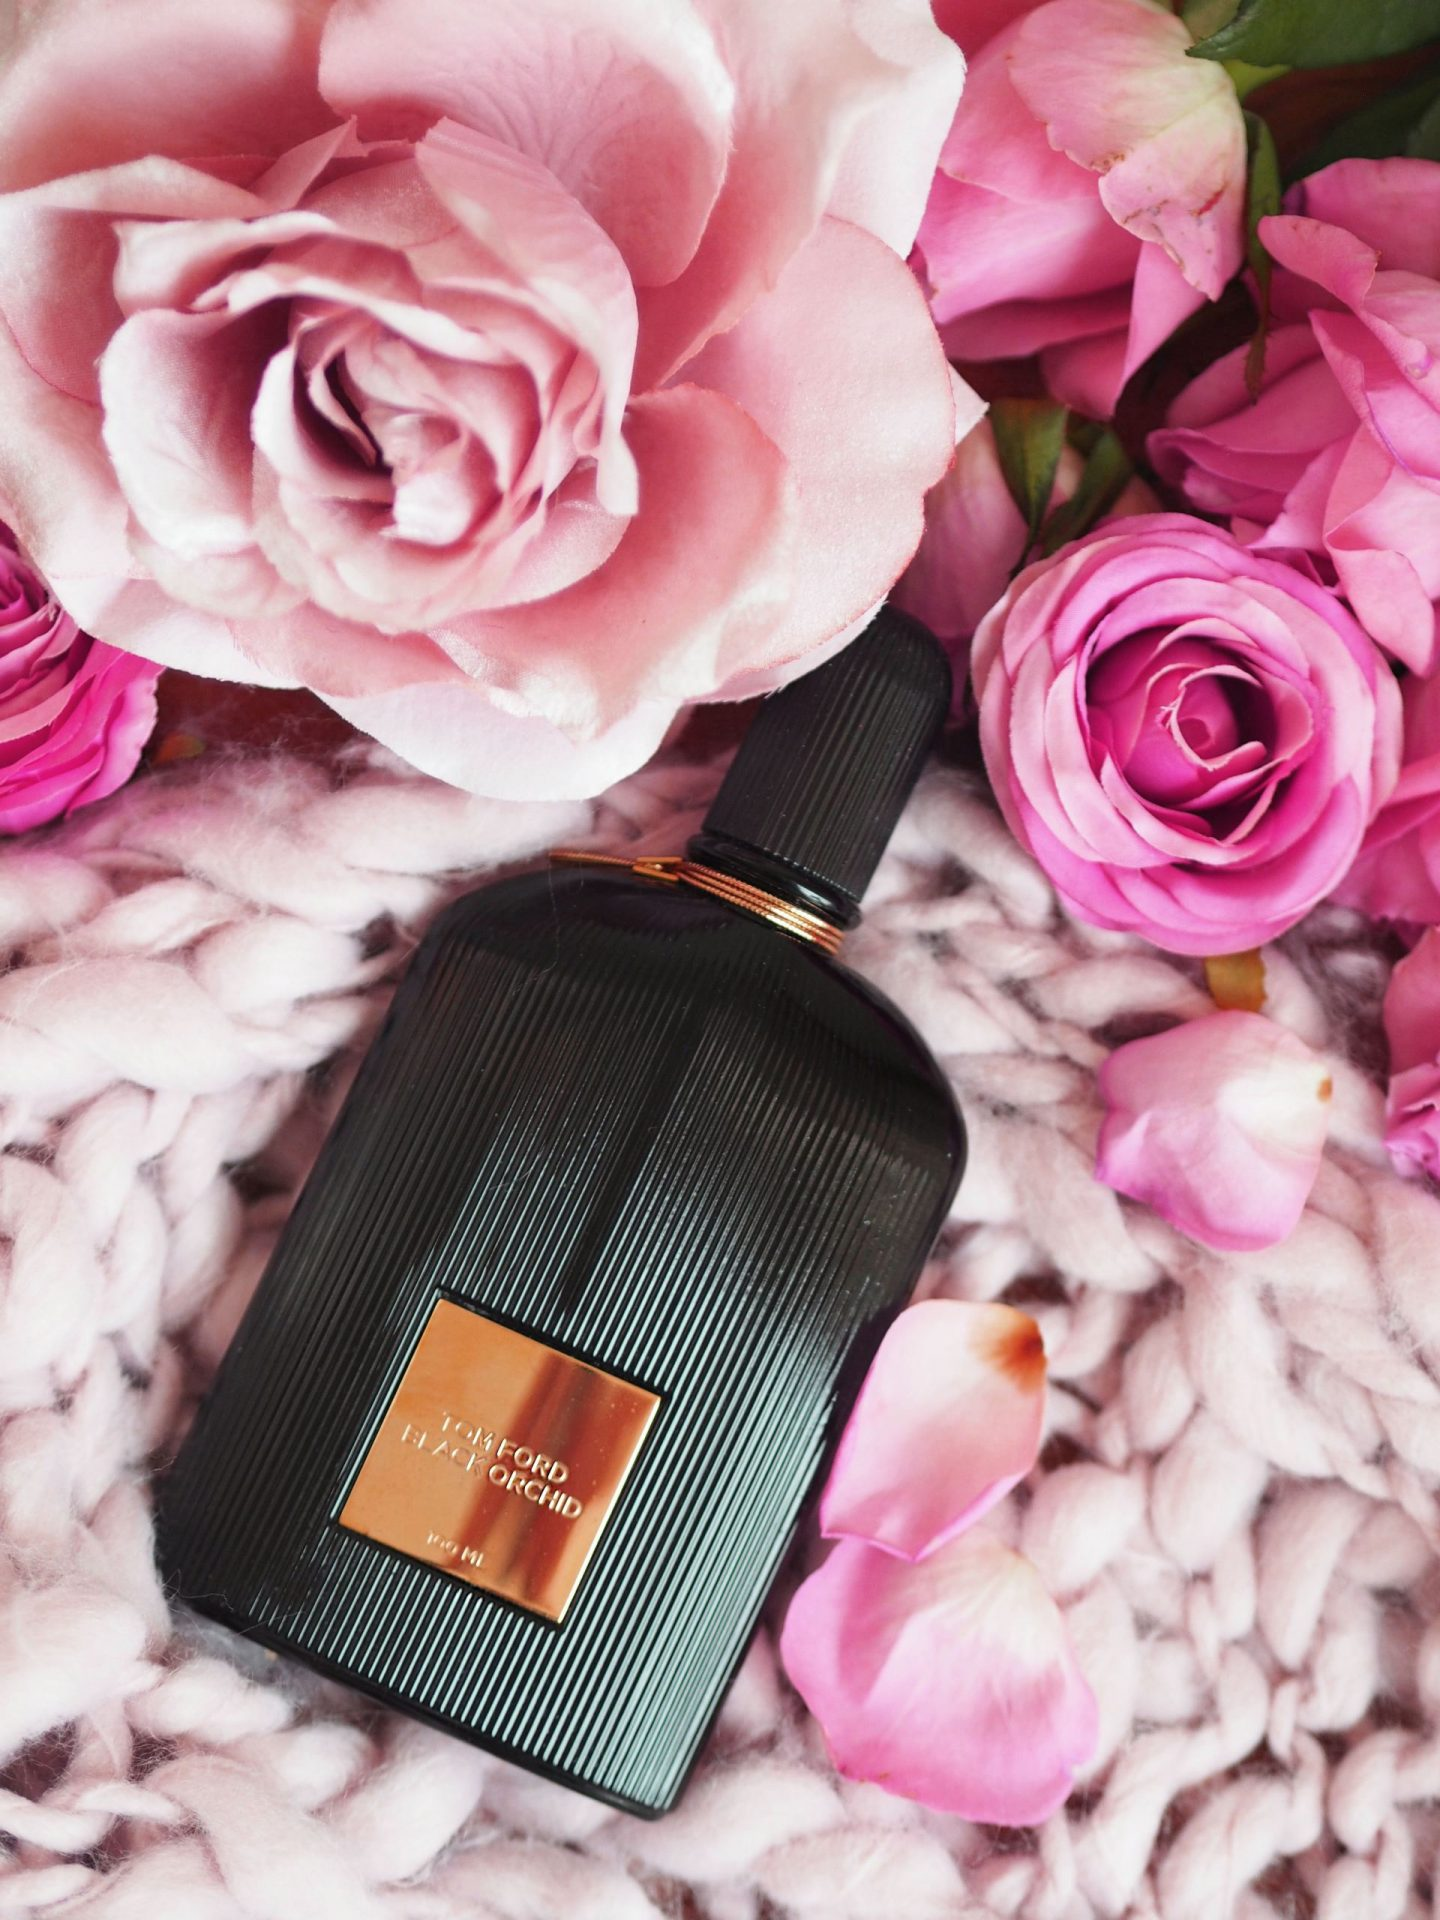 Tom Ford Black Orchid sale